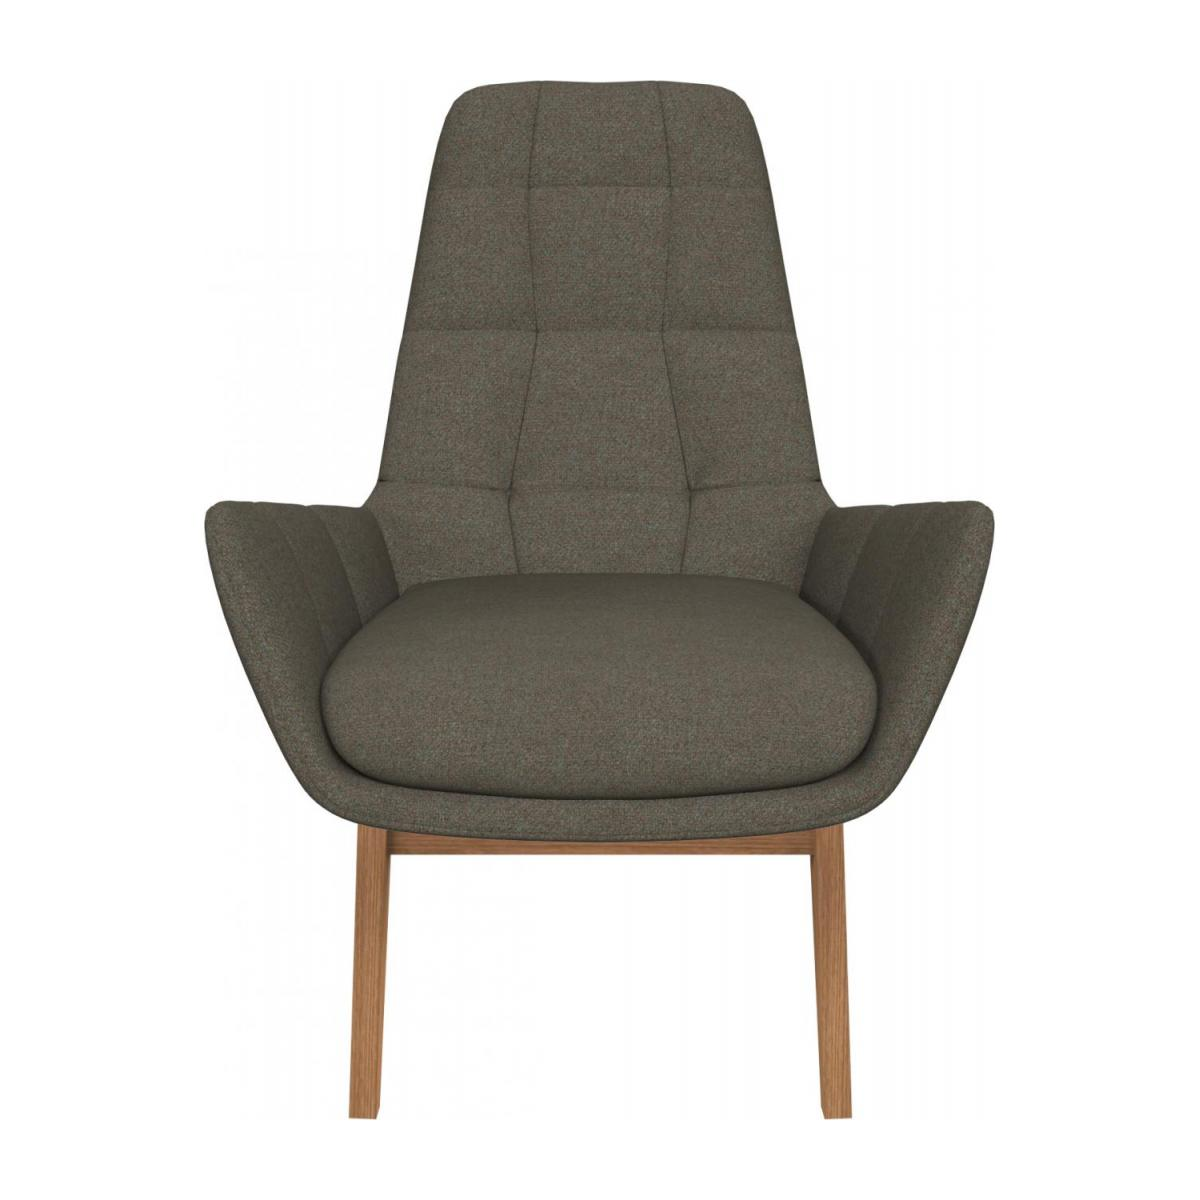 Armchair in Lecce fabric, slade grey with oak legs n°2